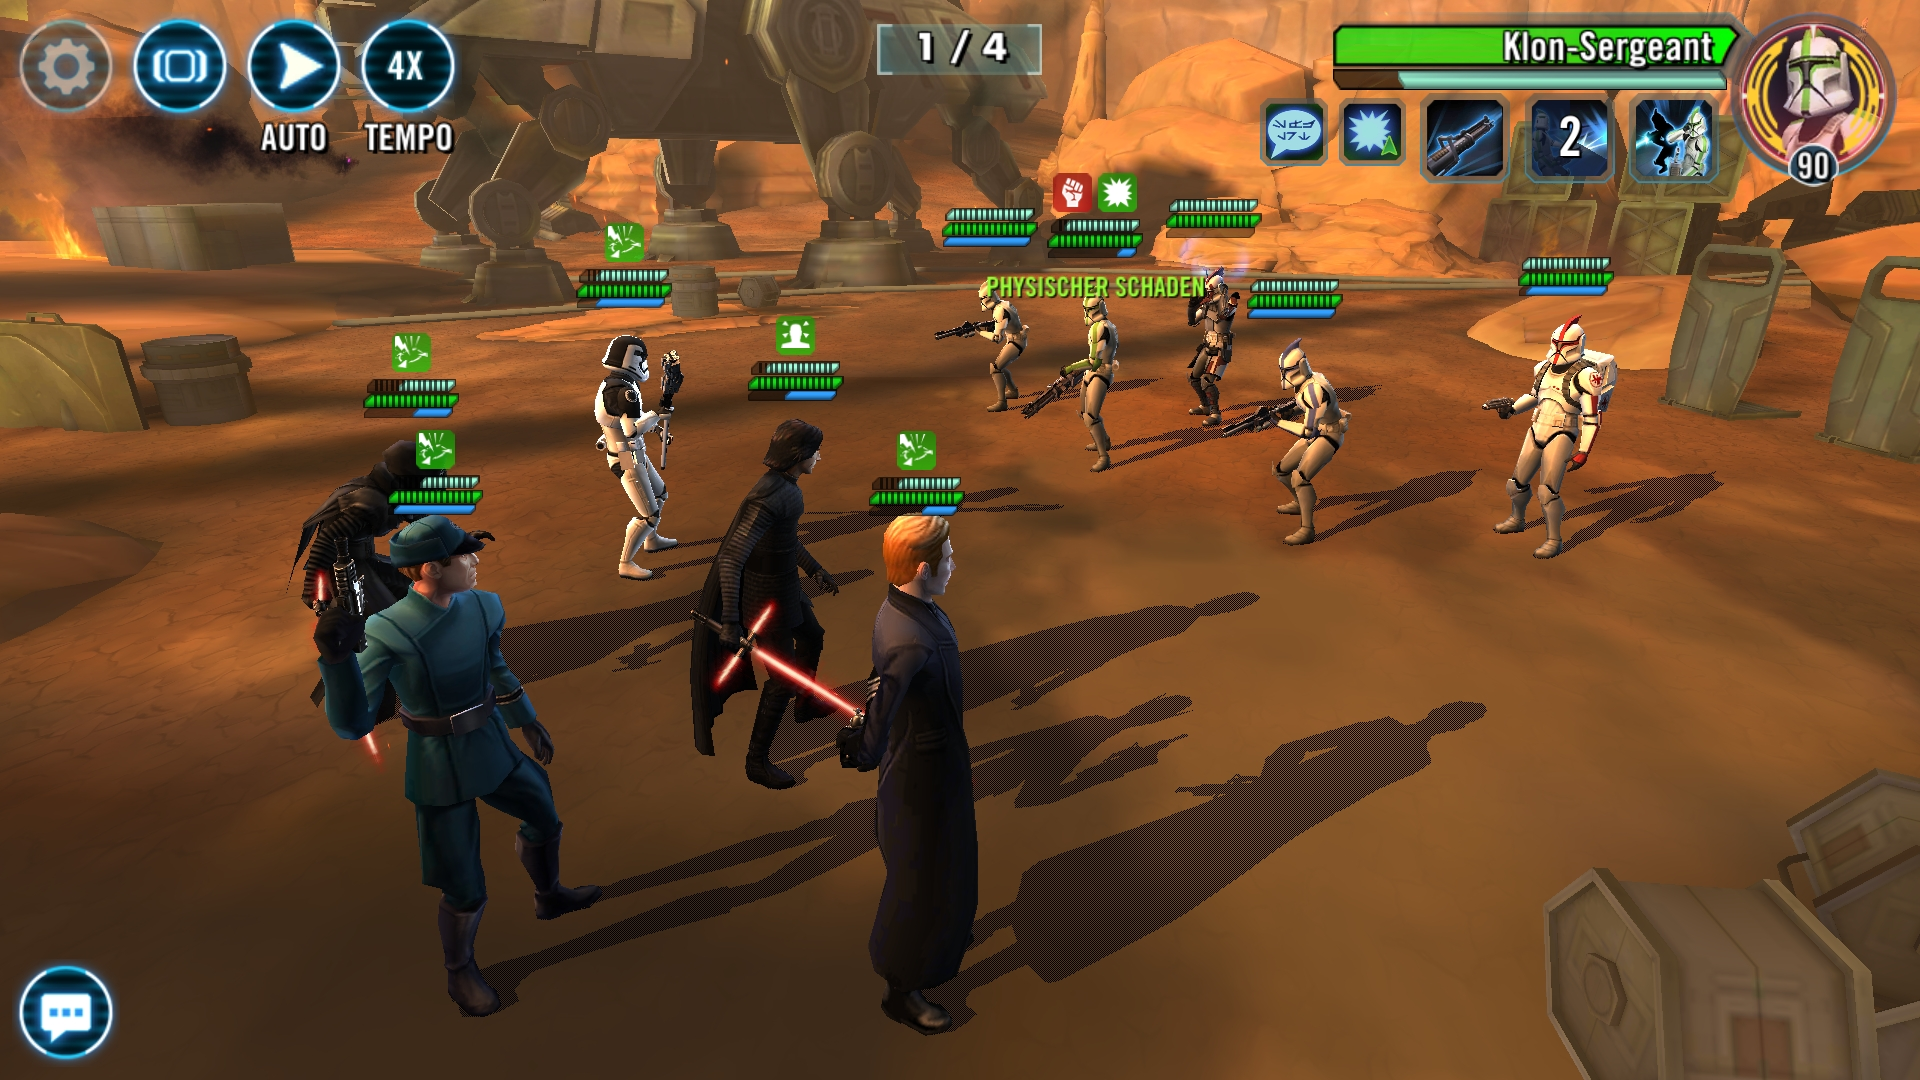 Screenshot_2021-03-01-06-23-55-473_com.ea.game.starwarscapital_row.jpg